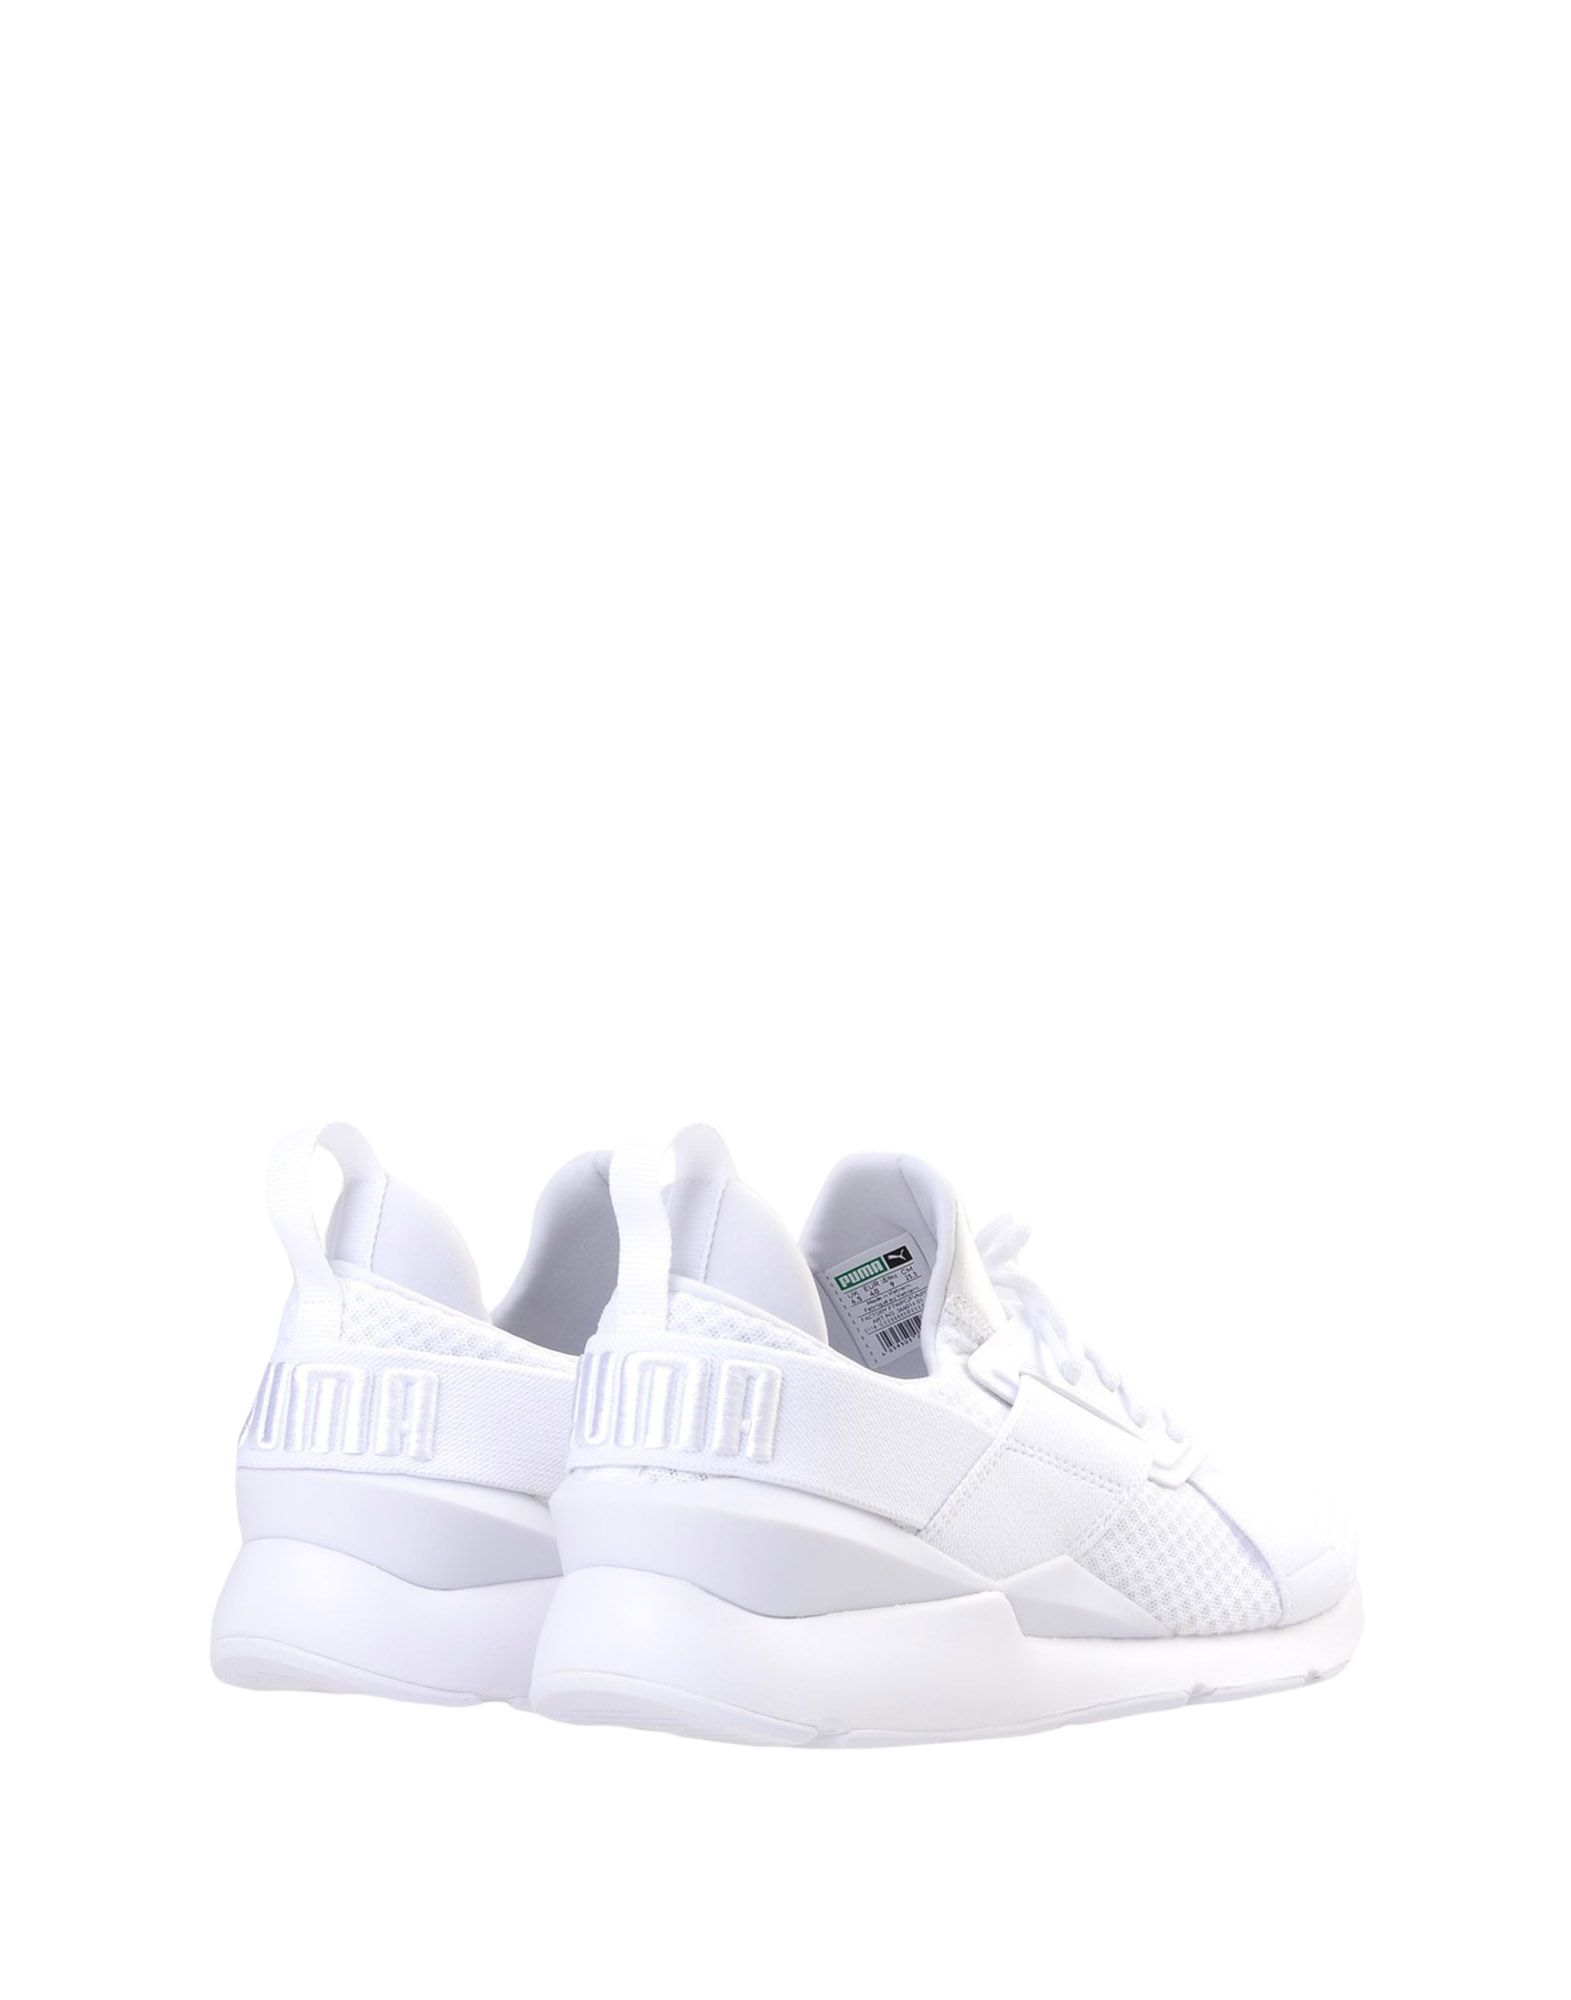 Sneakers Puma Muse Ep Wns - Femme - Sneakers Puma sur